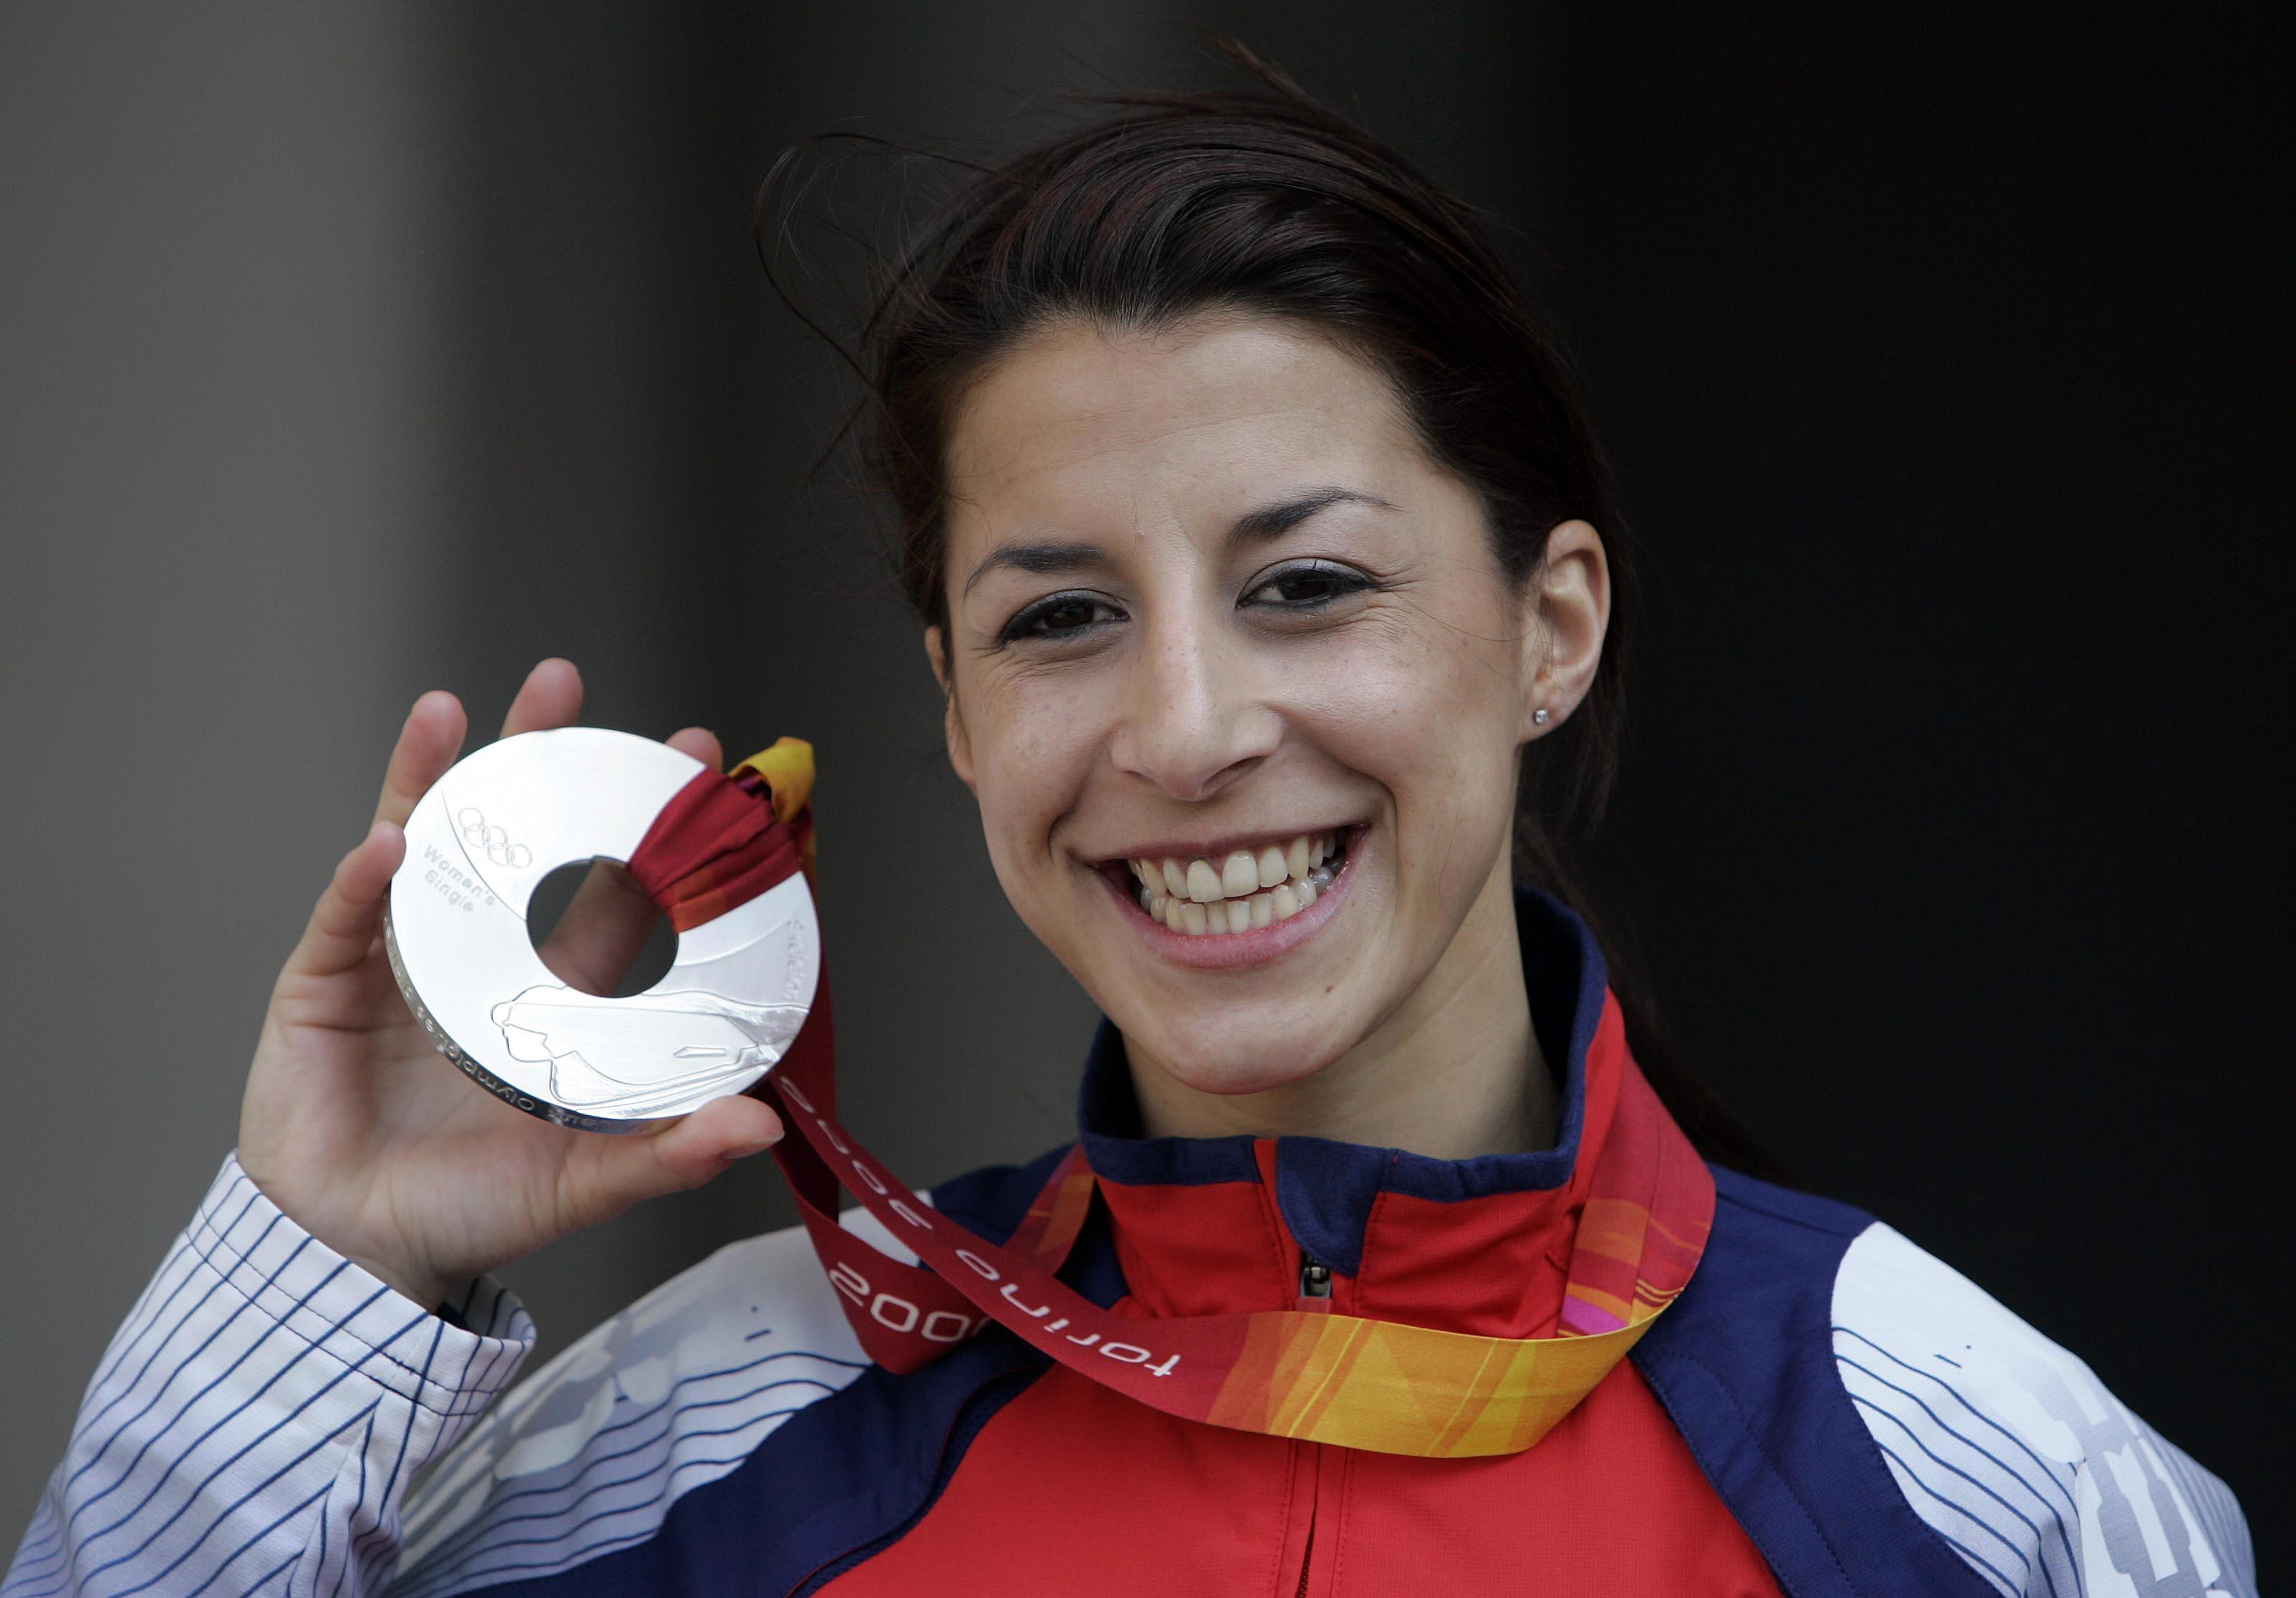 Shelley Rudman surprised herself as she won a silver medal at the 2006 Winter Olympics